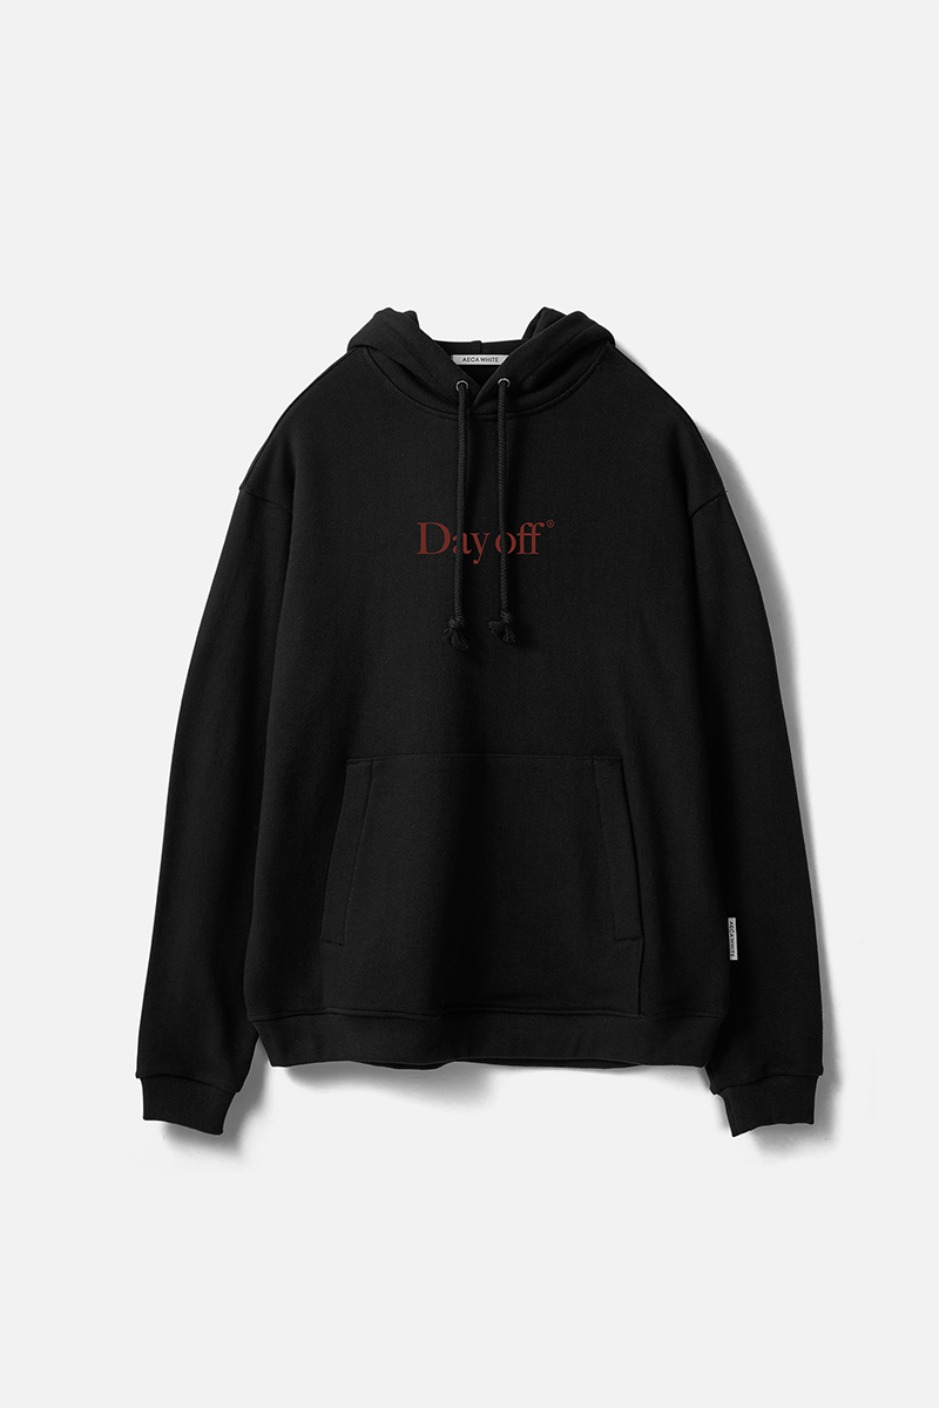 DAY OFF PULLOVER HOODIE-BLACK